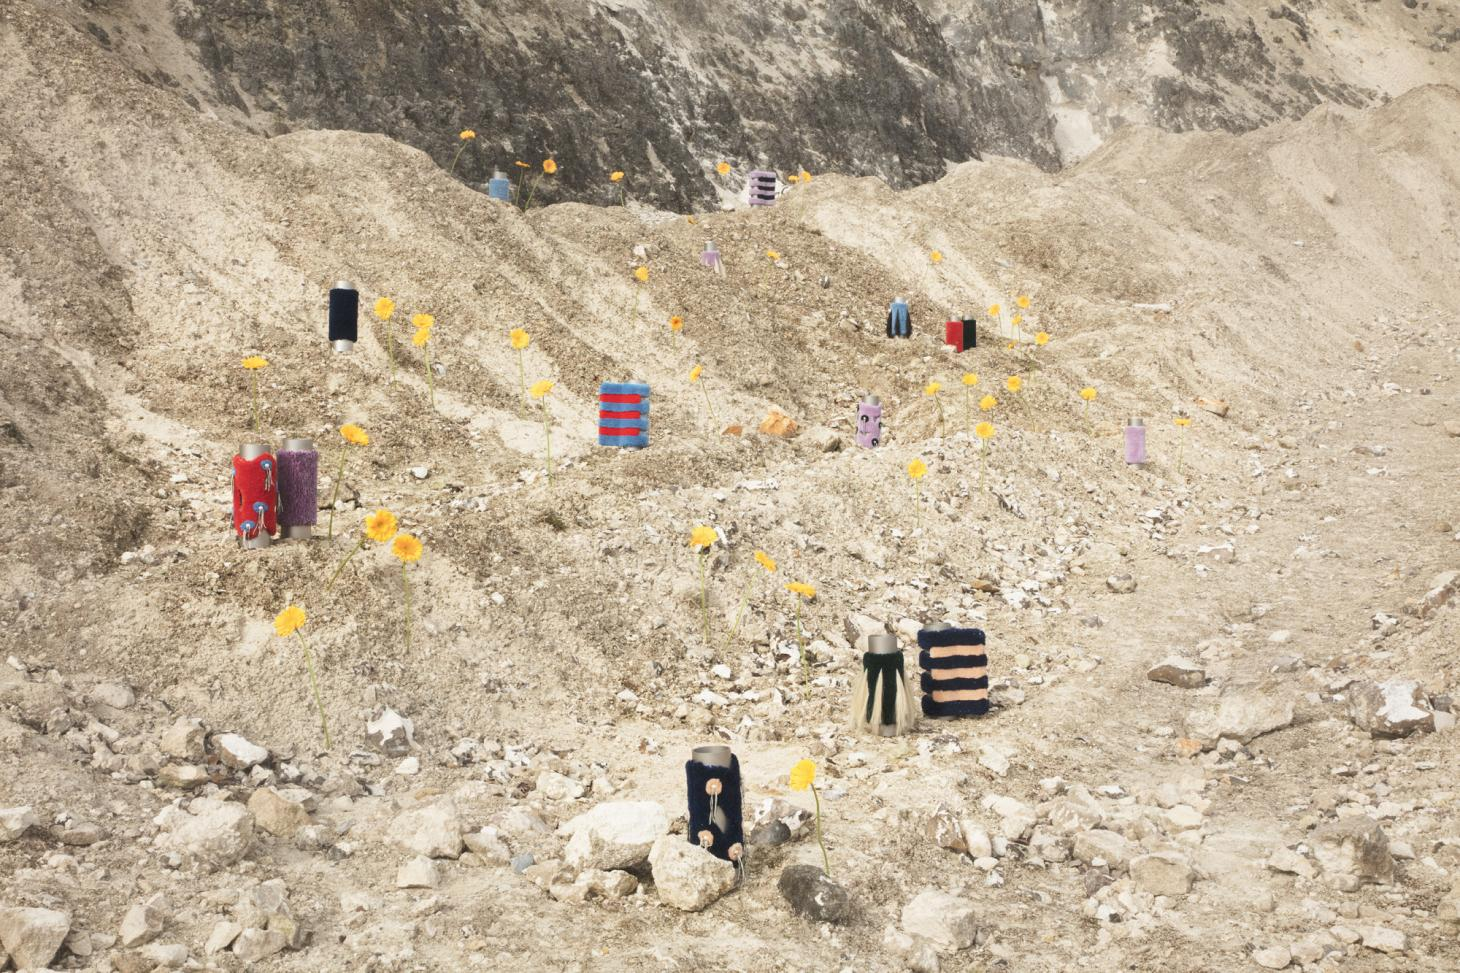 An arrangement of vases and yellow gerberas on a rocky hill by Tableau Copenhagen